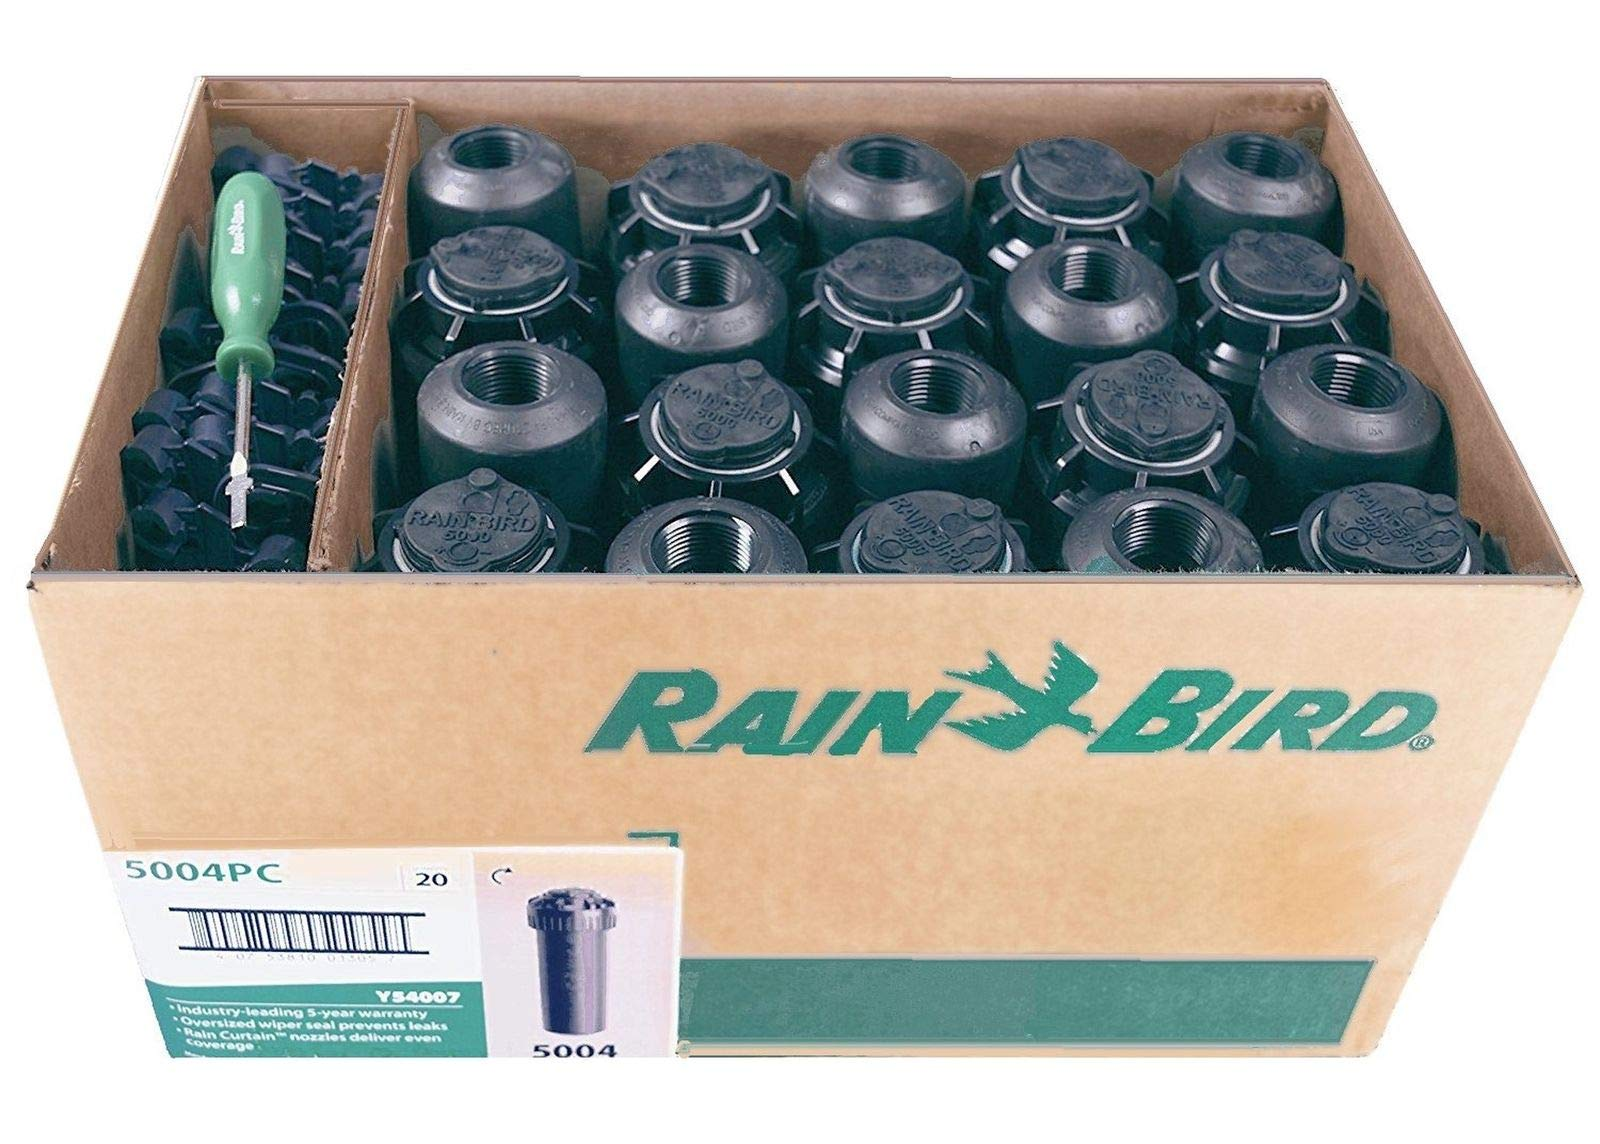 5000 Series Rotor Sprinkler Head - 5004 PC Model, Adjustable 40-360 Degree Part-Circle, 4 Inch Pop-Up Lawn Sprayer Irrigation System - 25 to 50 Feet Water Spray Distance (Y54007) (20 Pack Case) by Rain-bird